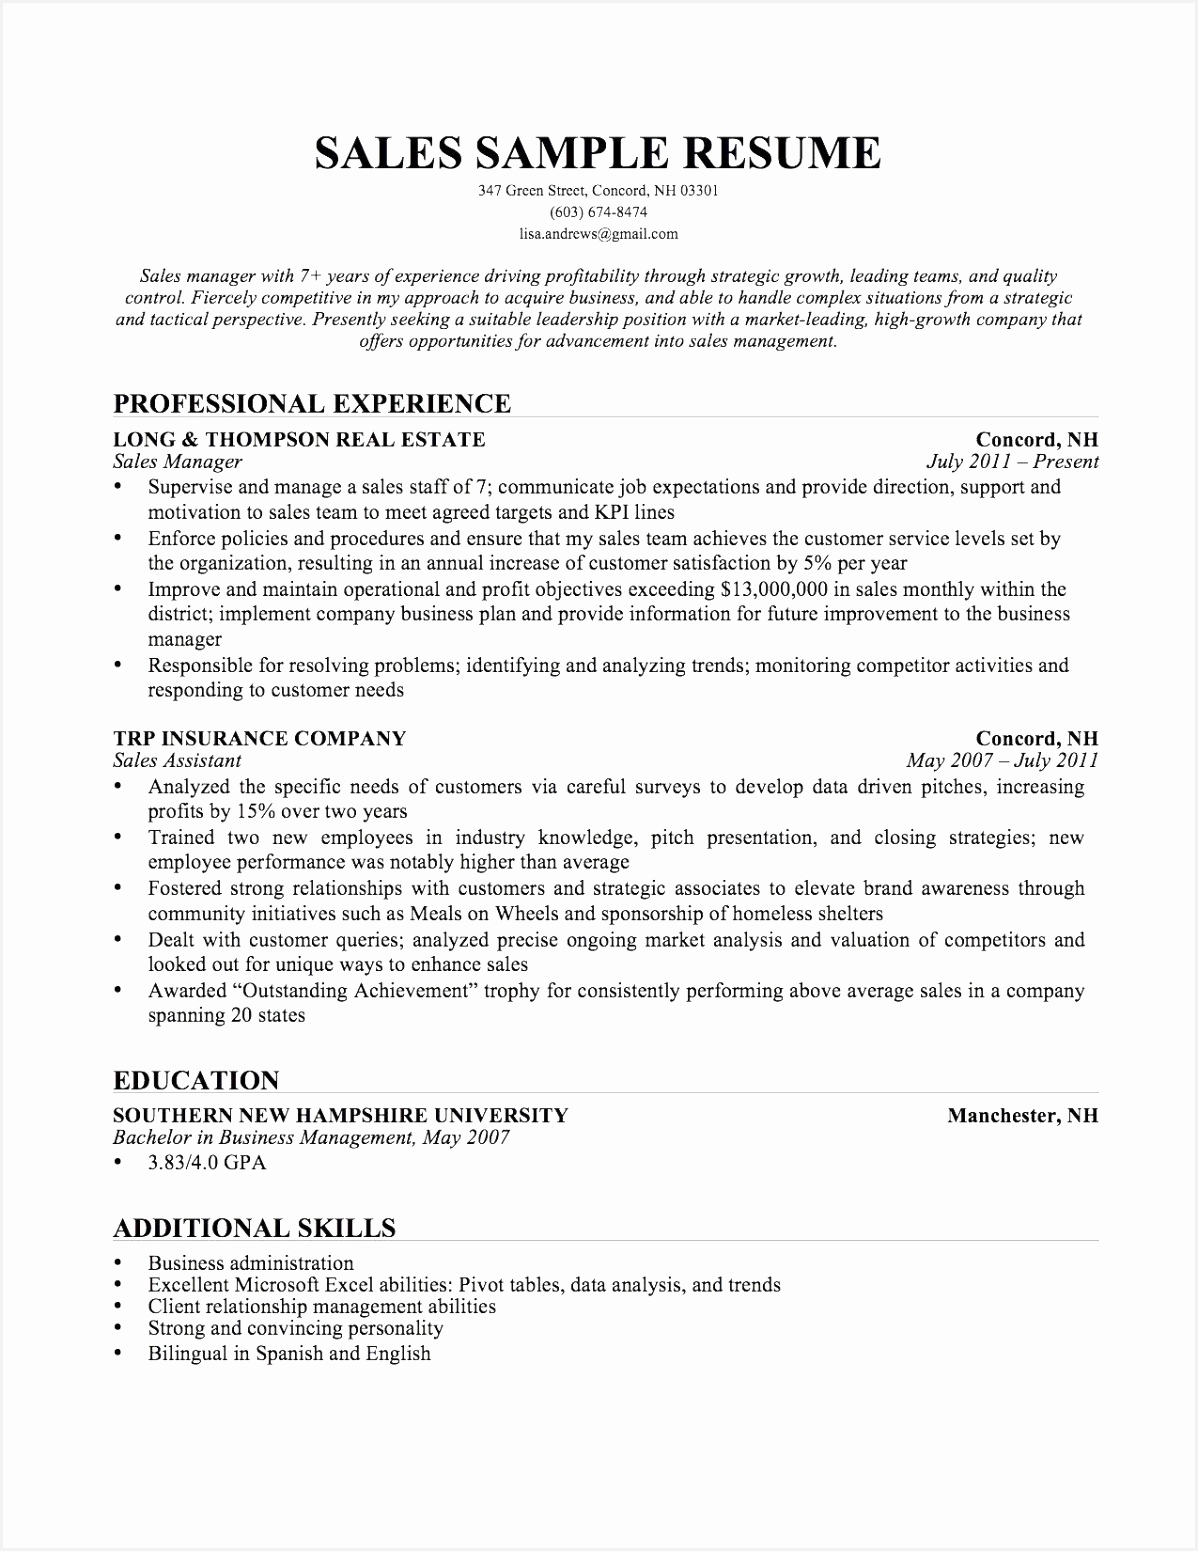 Resume Examples for Executive assistant Azwnd Fresh Resume Samples Executive assistant Archives Saveburdenlake org New15511198